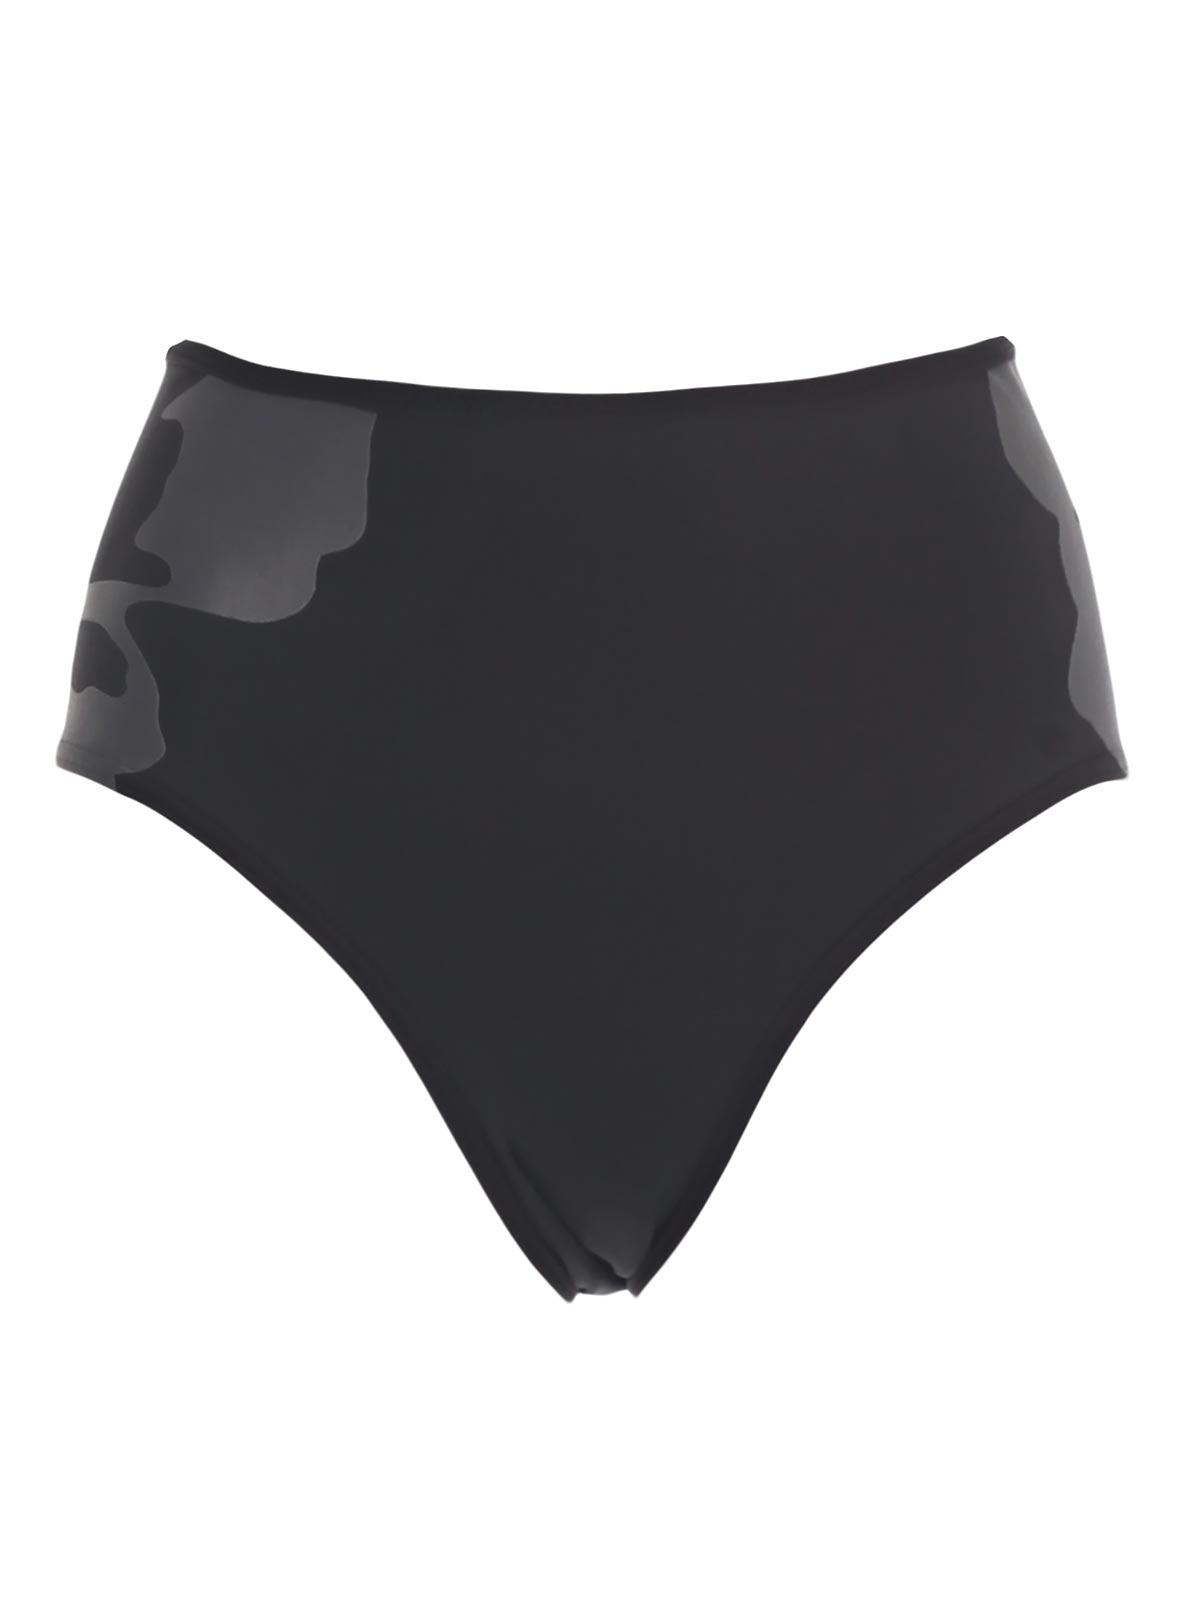 Picture of ADIDAS BY STELLA MCCARTNEY Bikini